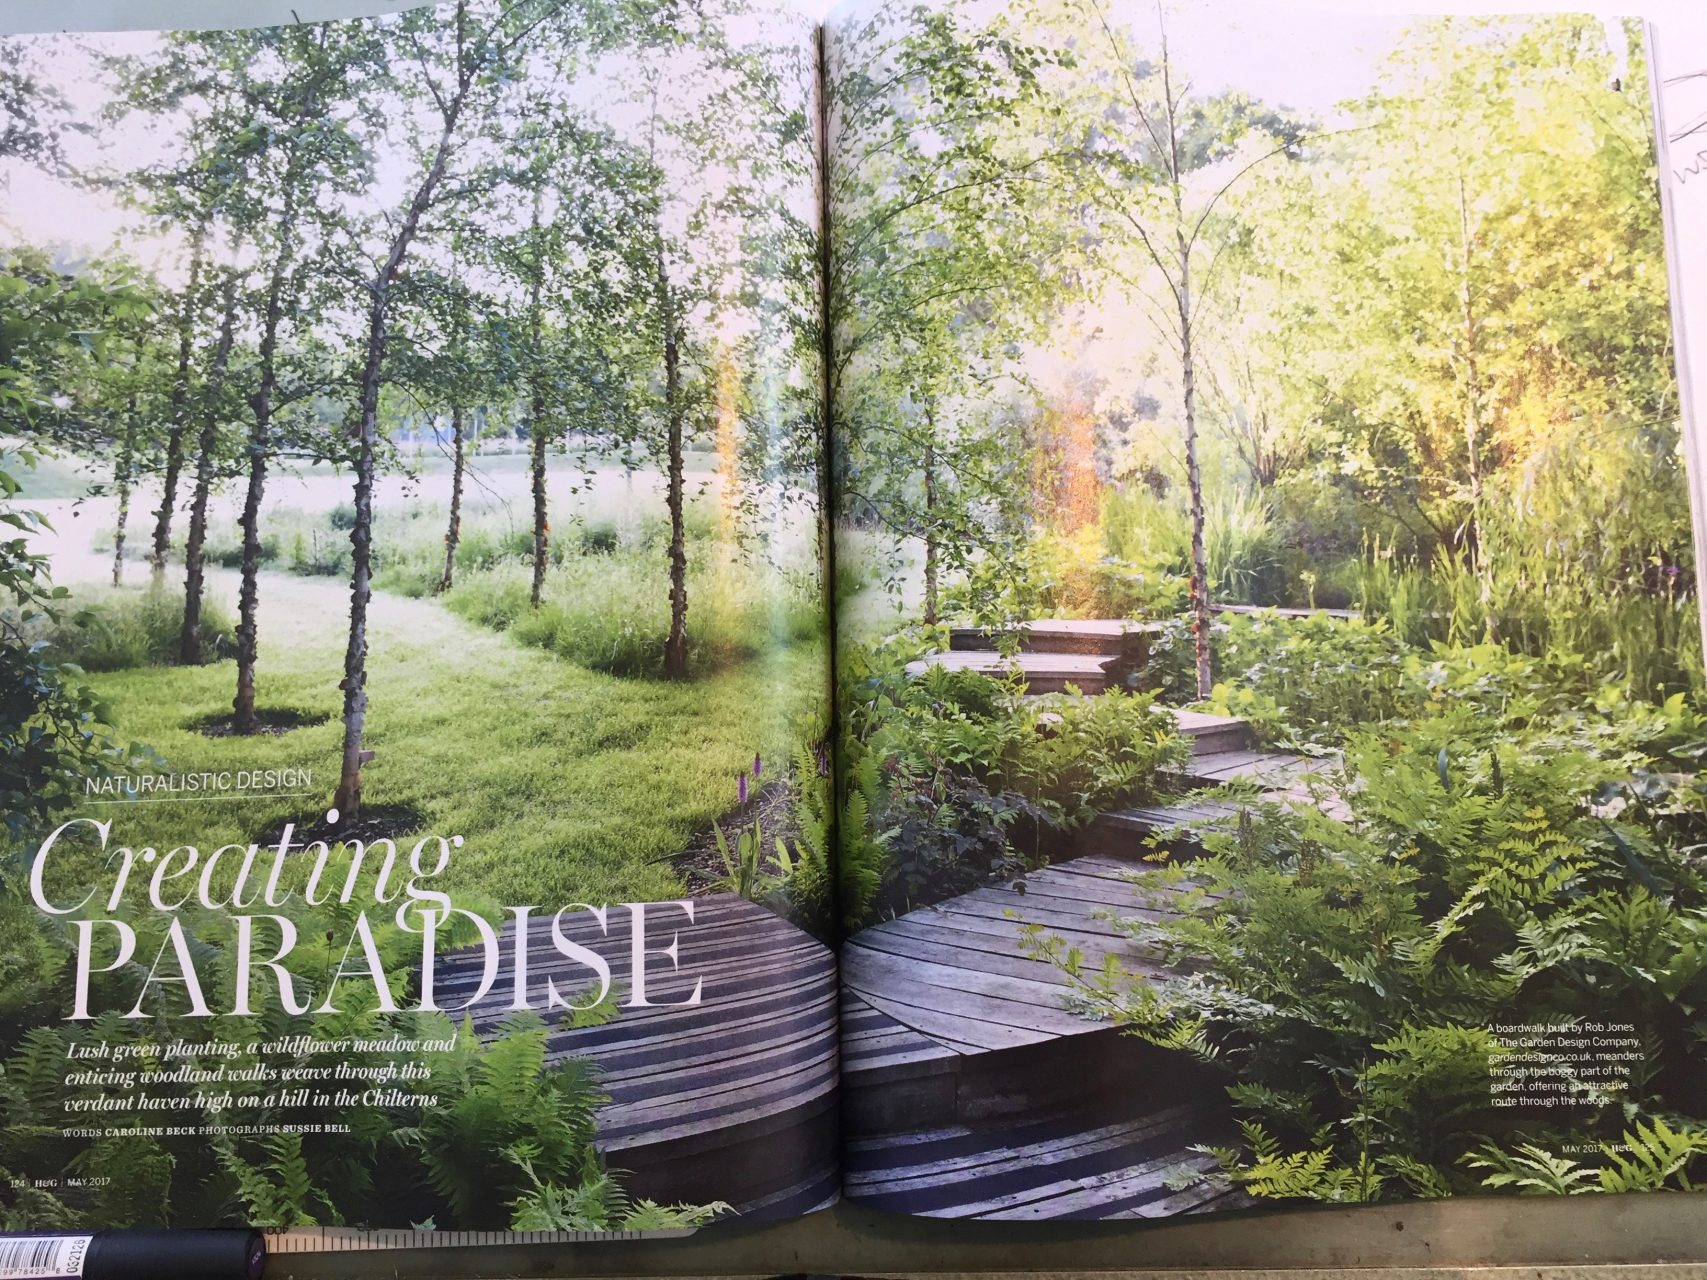 This is the front piece of an article featured in Homes & Gardens Magazine May 2017. It features Orchard House garden